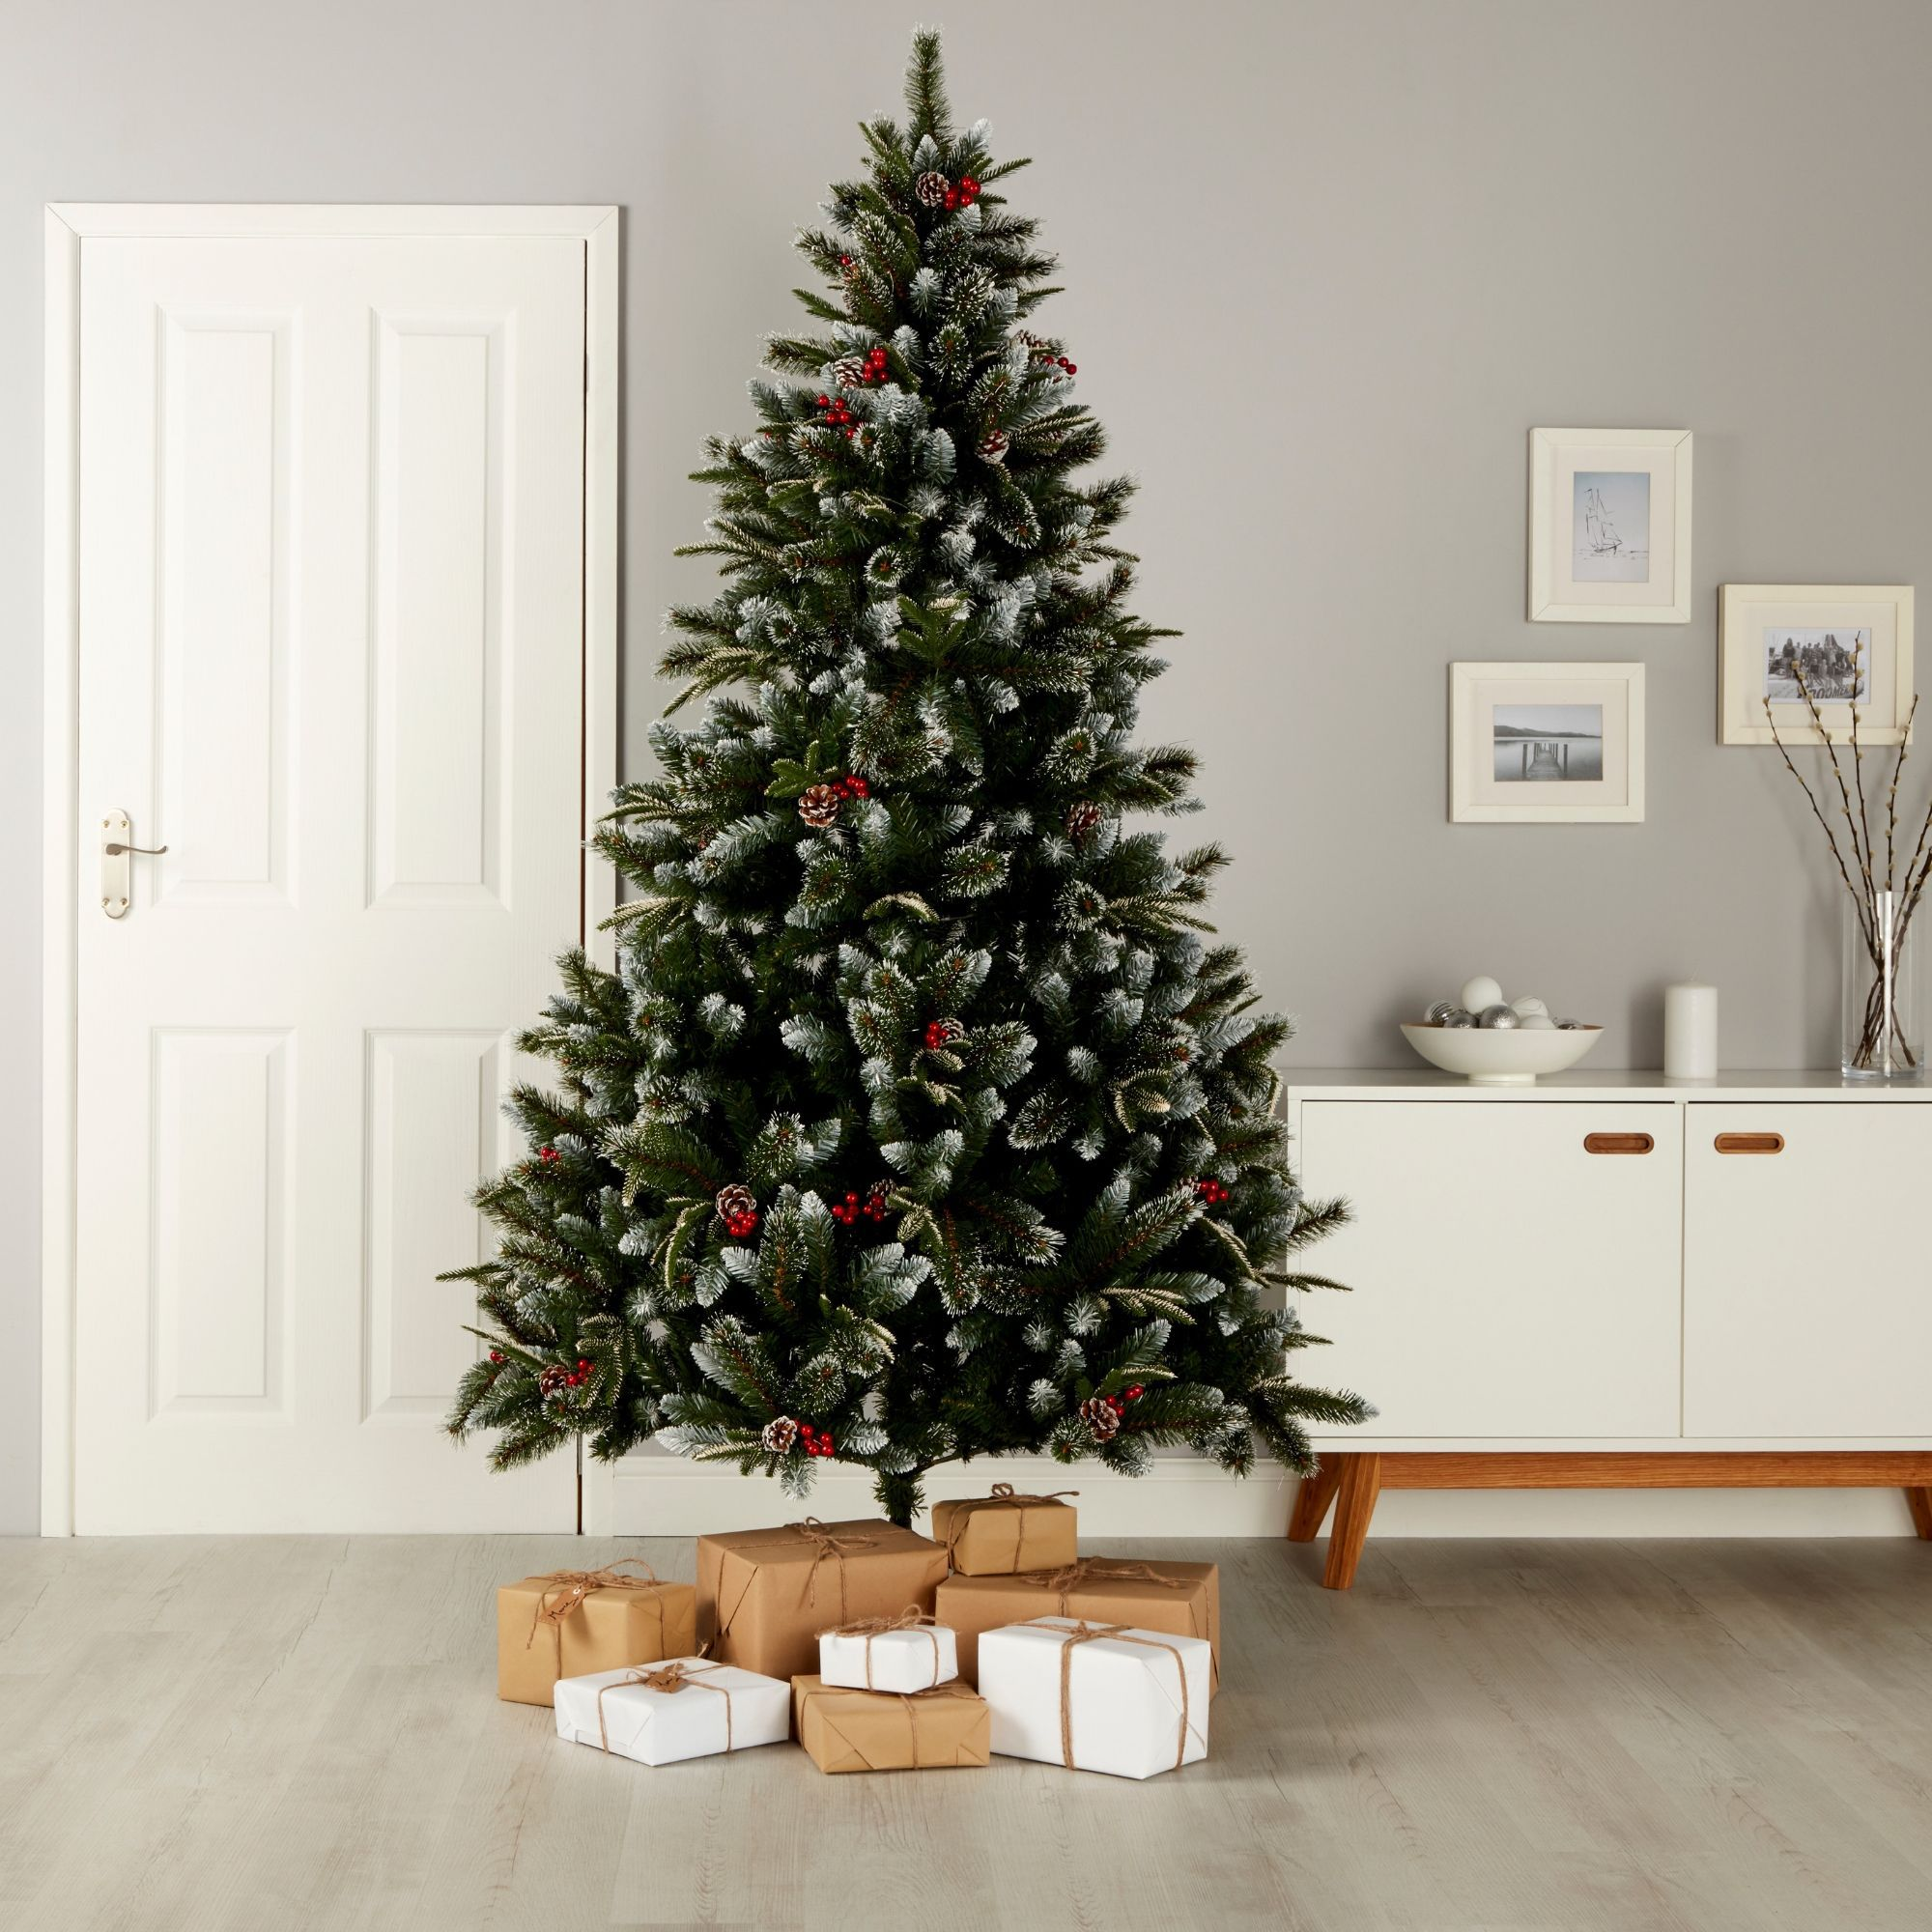 Christmas Branch Tree.6ft 10in New Jersey Spruce Artificial Christmas Tree Departments Diy At B Q